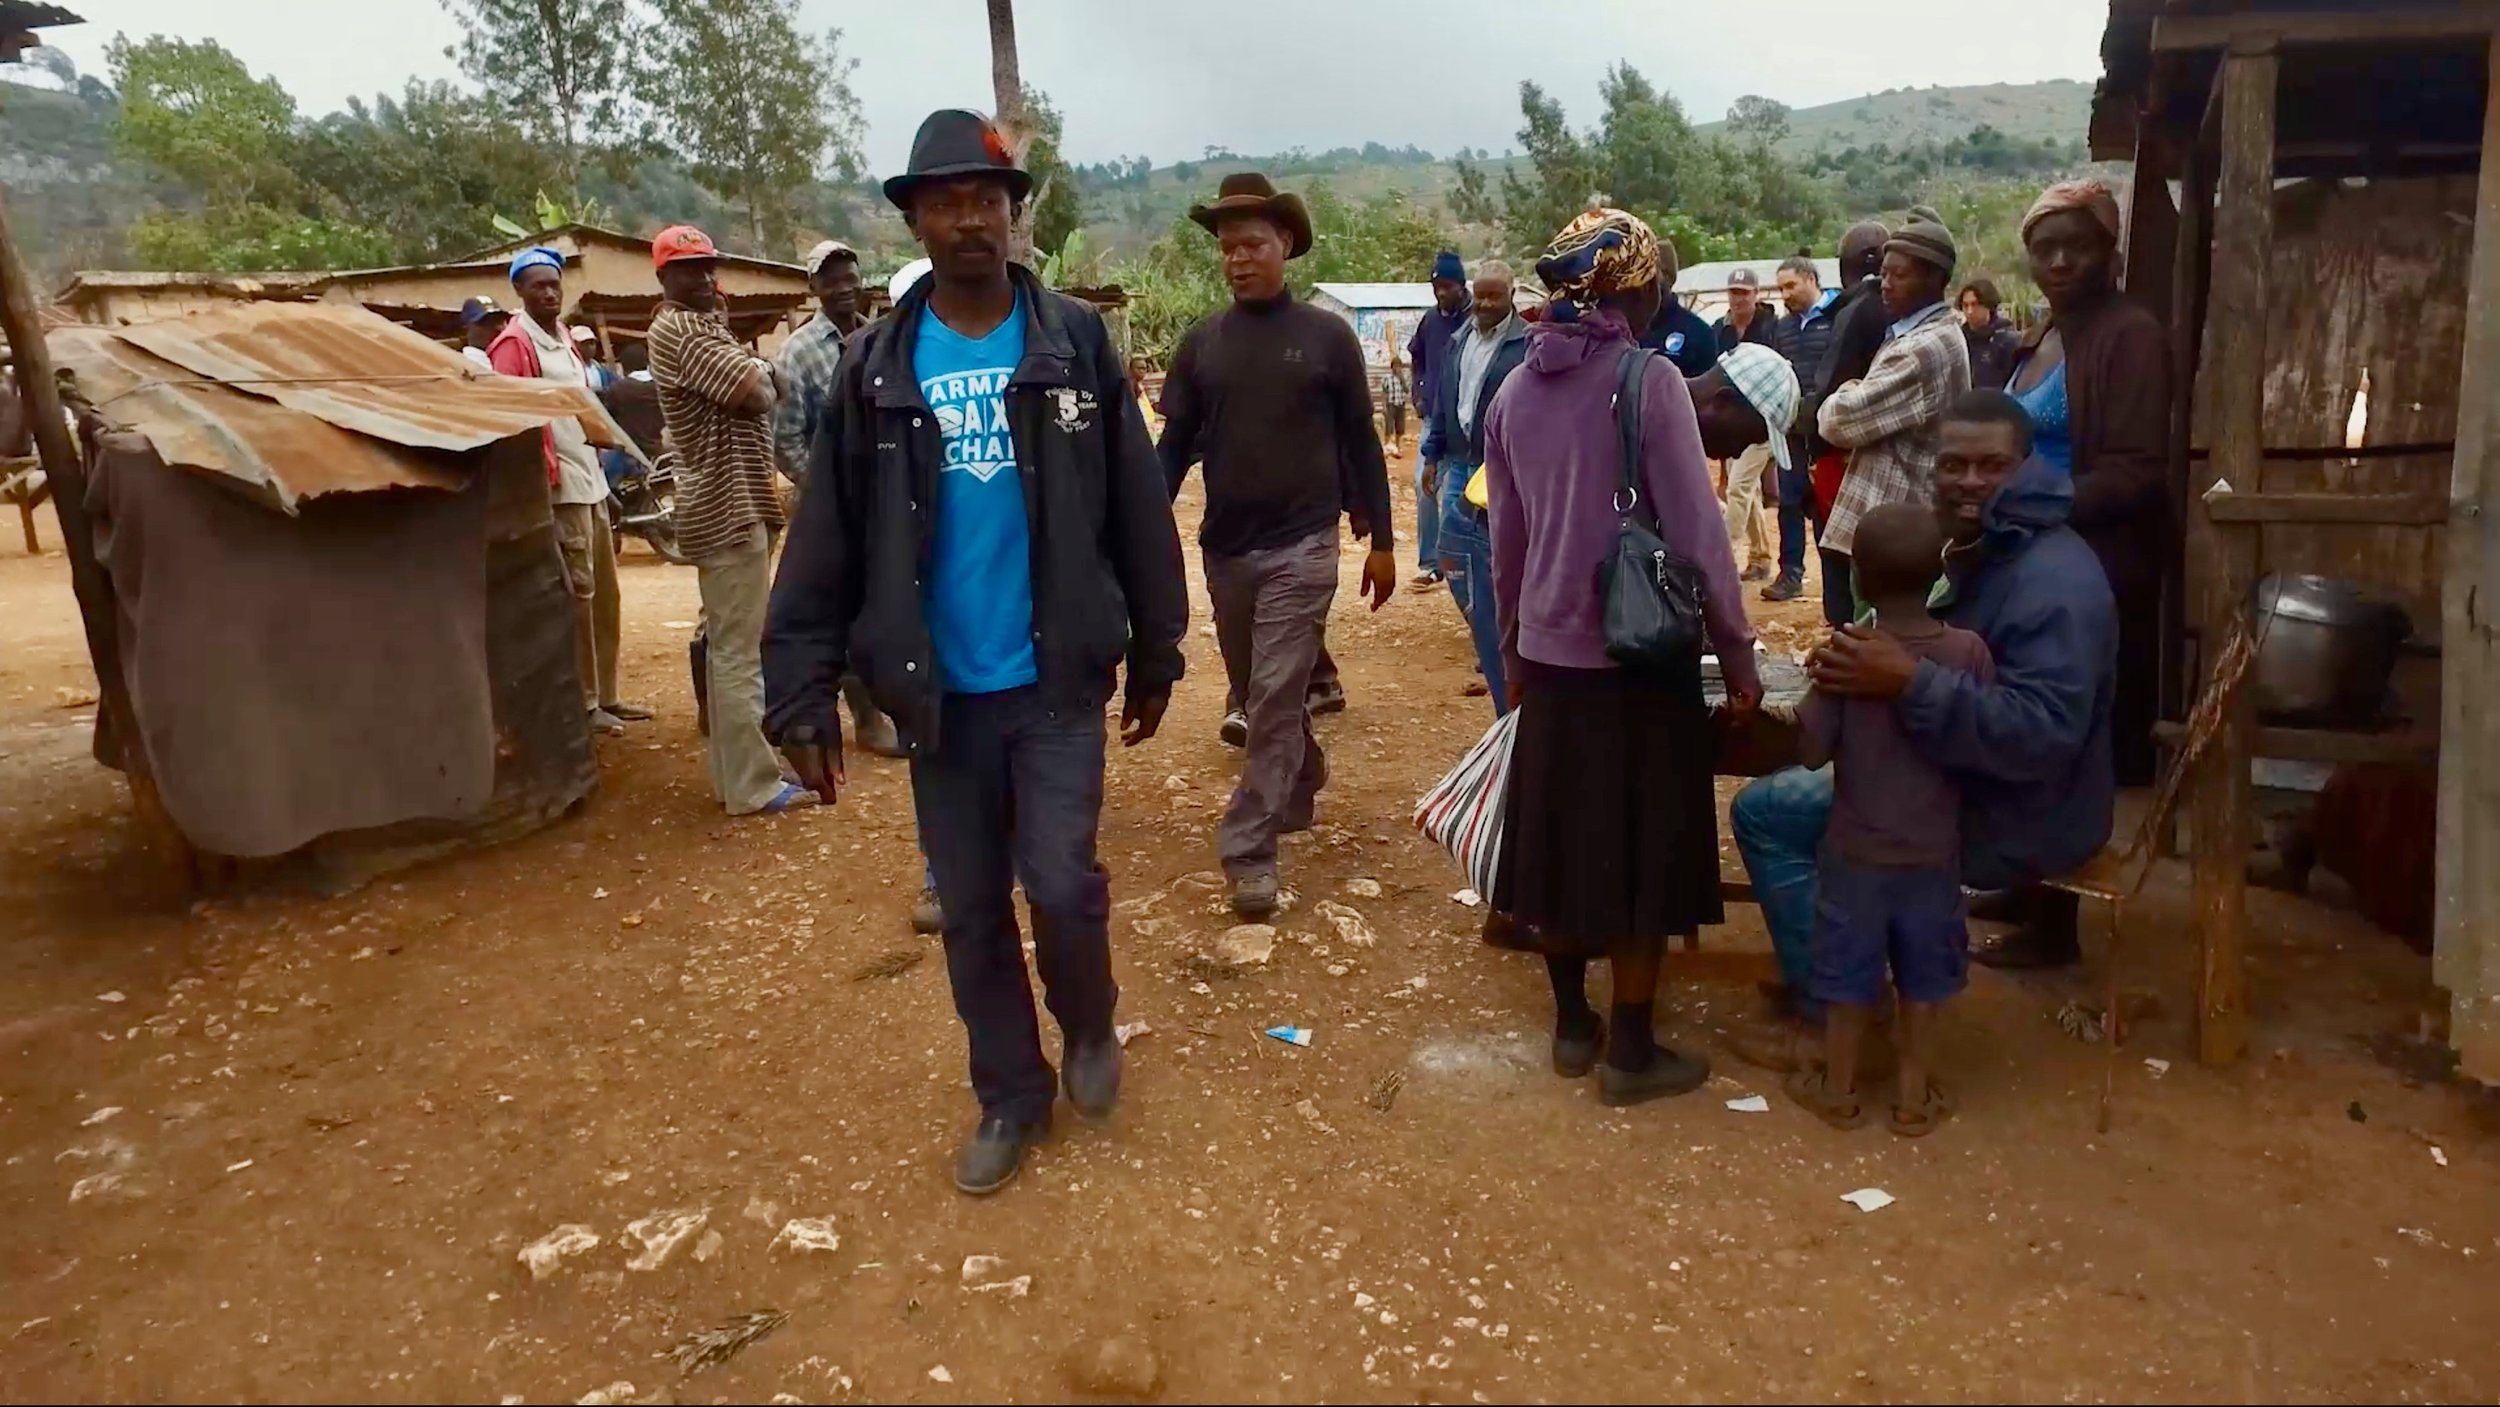 people walking on dirt road with permanent and makeshift structures